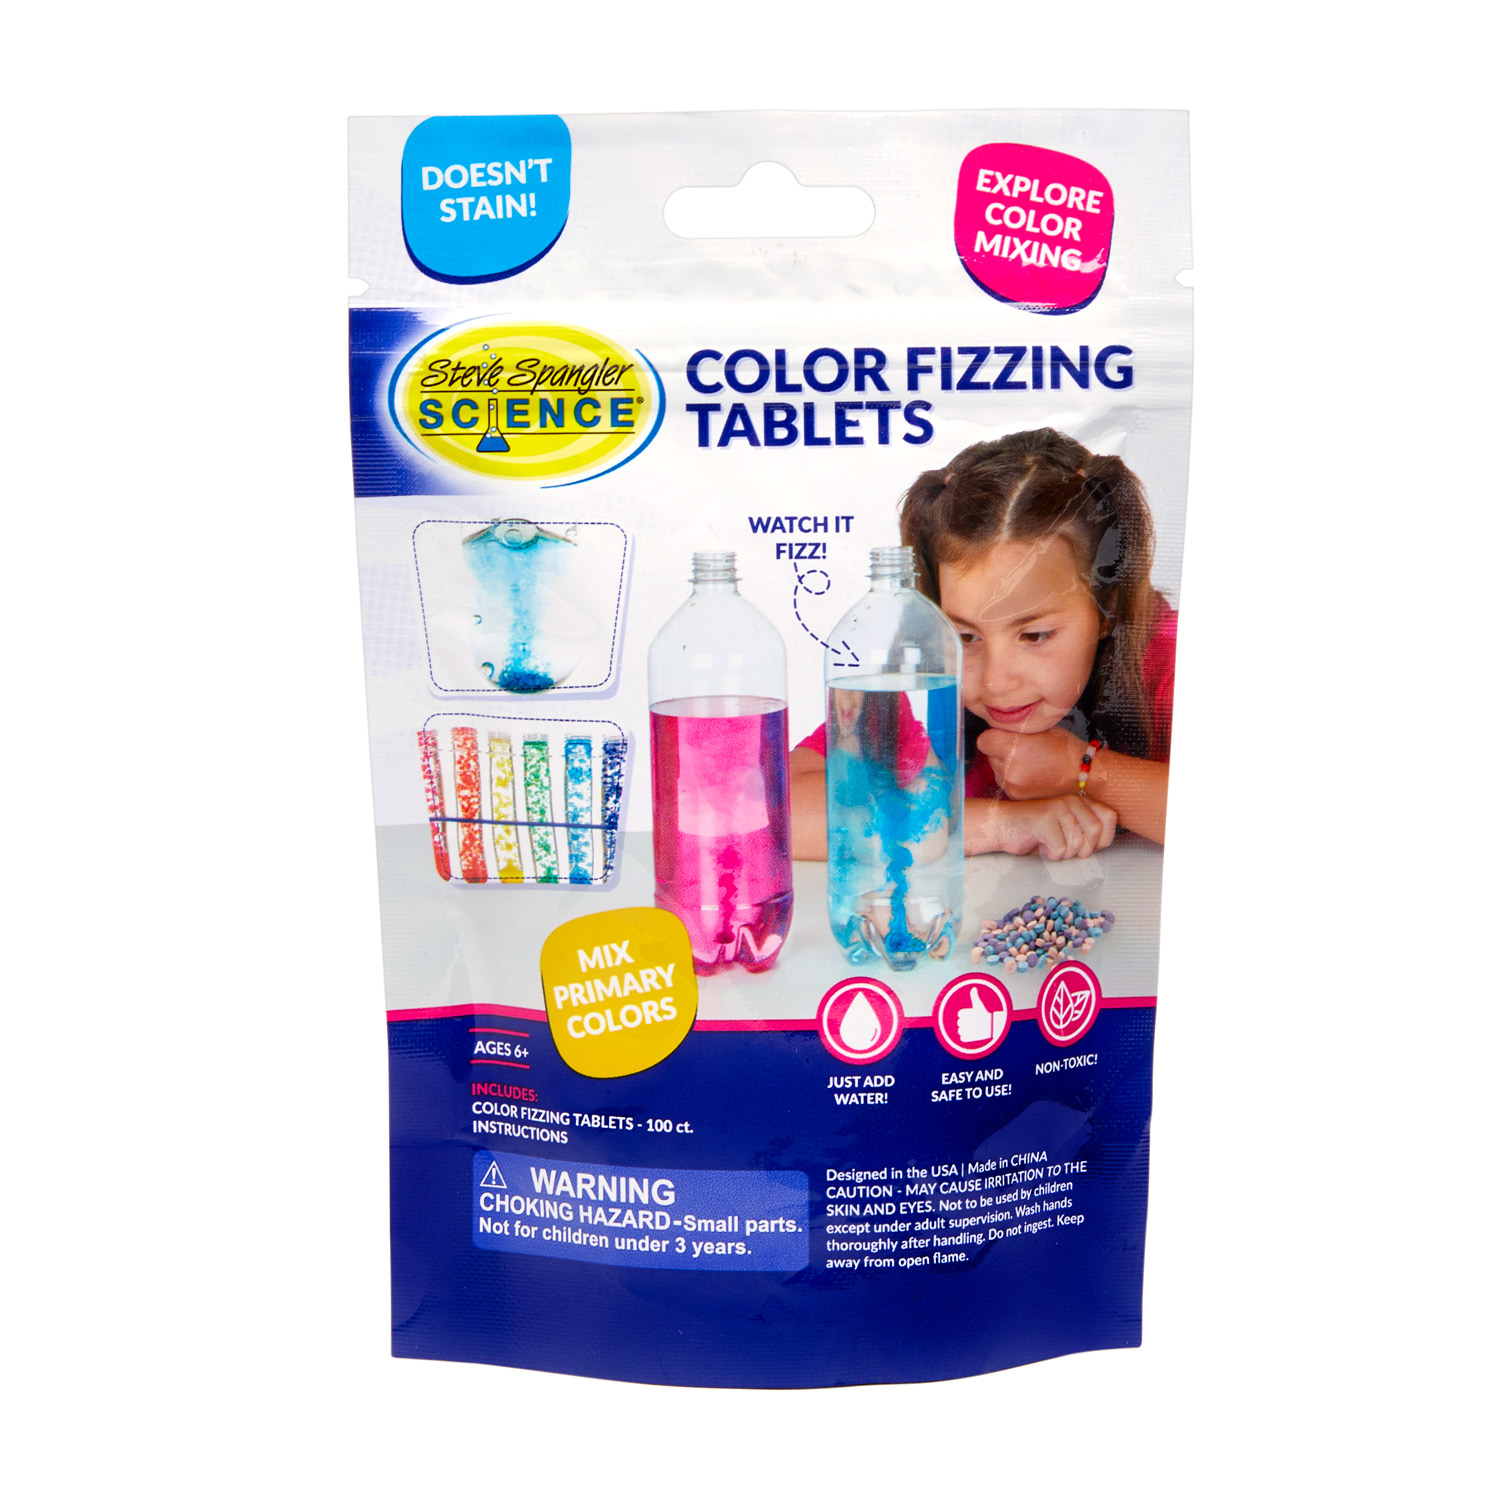 Color Fizzing Tablets